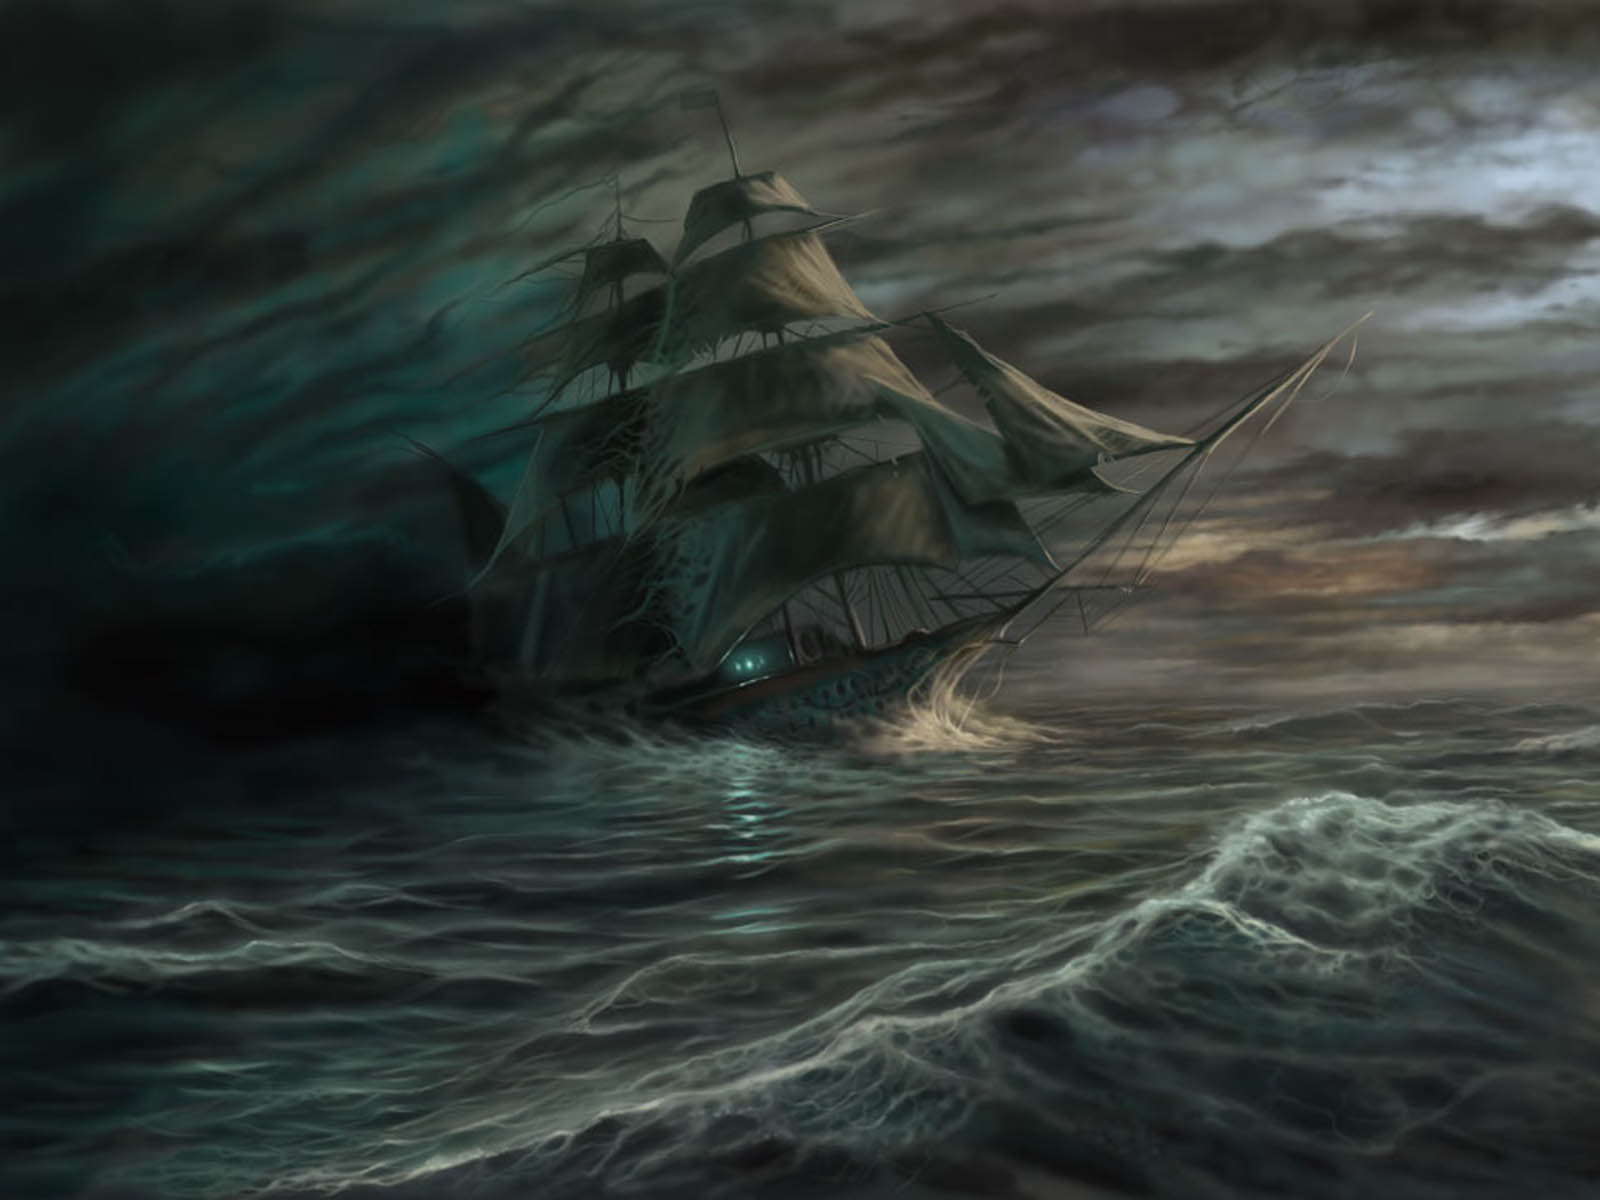 wallpapers Ghost Ship 1600x1200